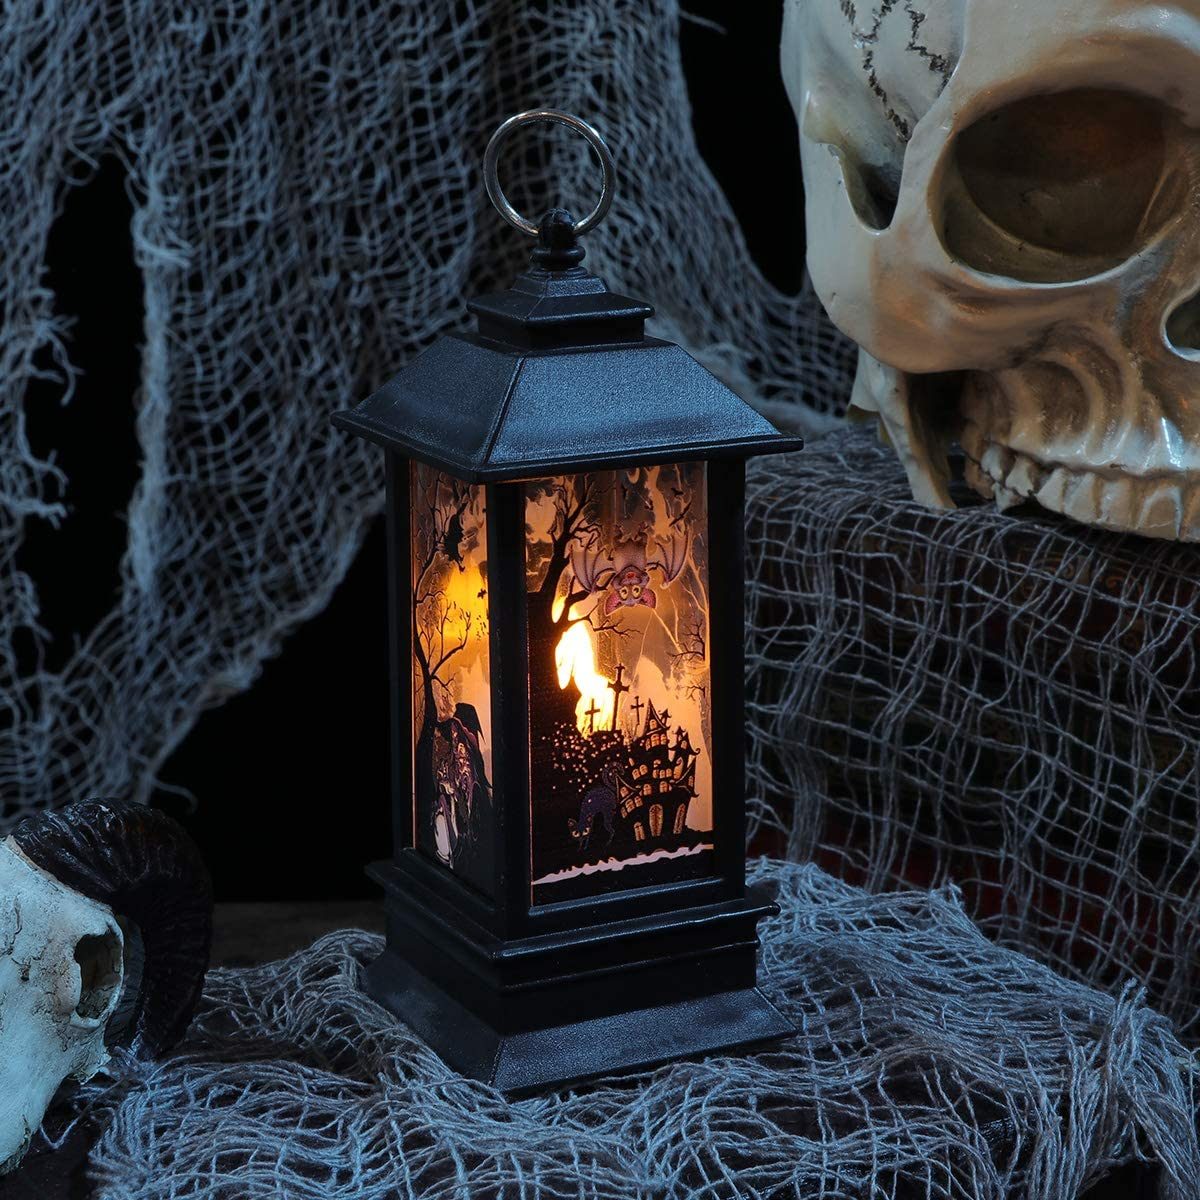 Simulation Kerosene Lamp Halloween Decorative Witch Pattern Lantern Portable Candle Light Party Props Size Small Party Favor